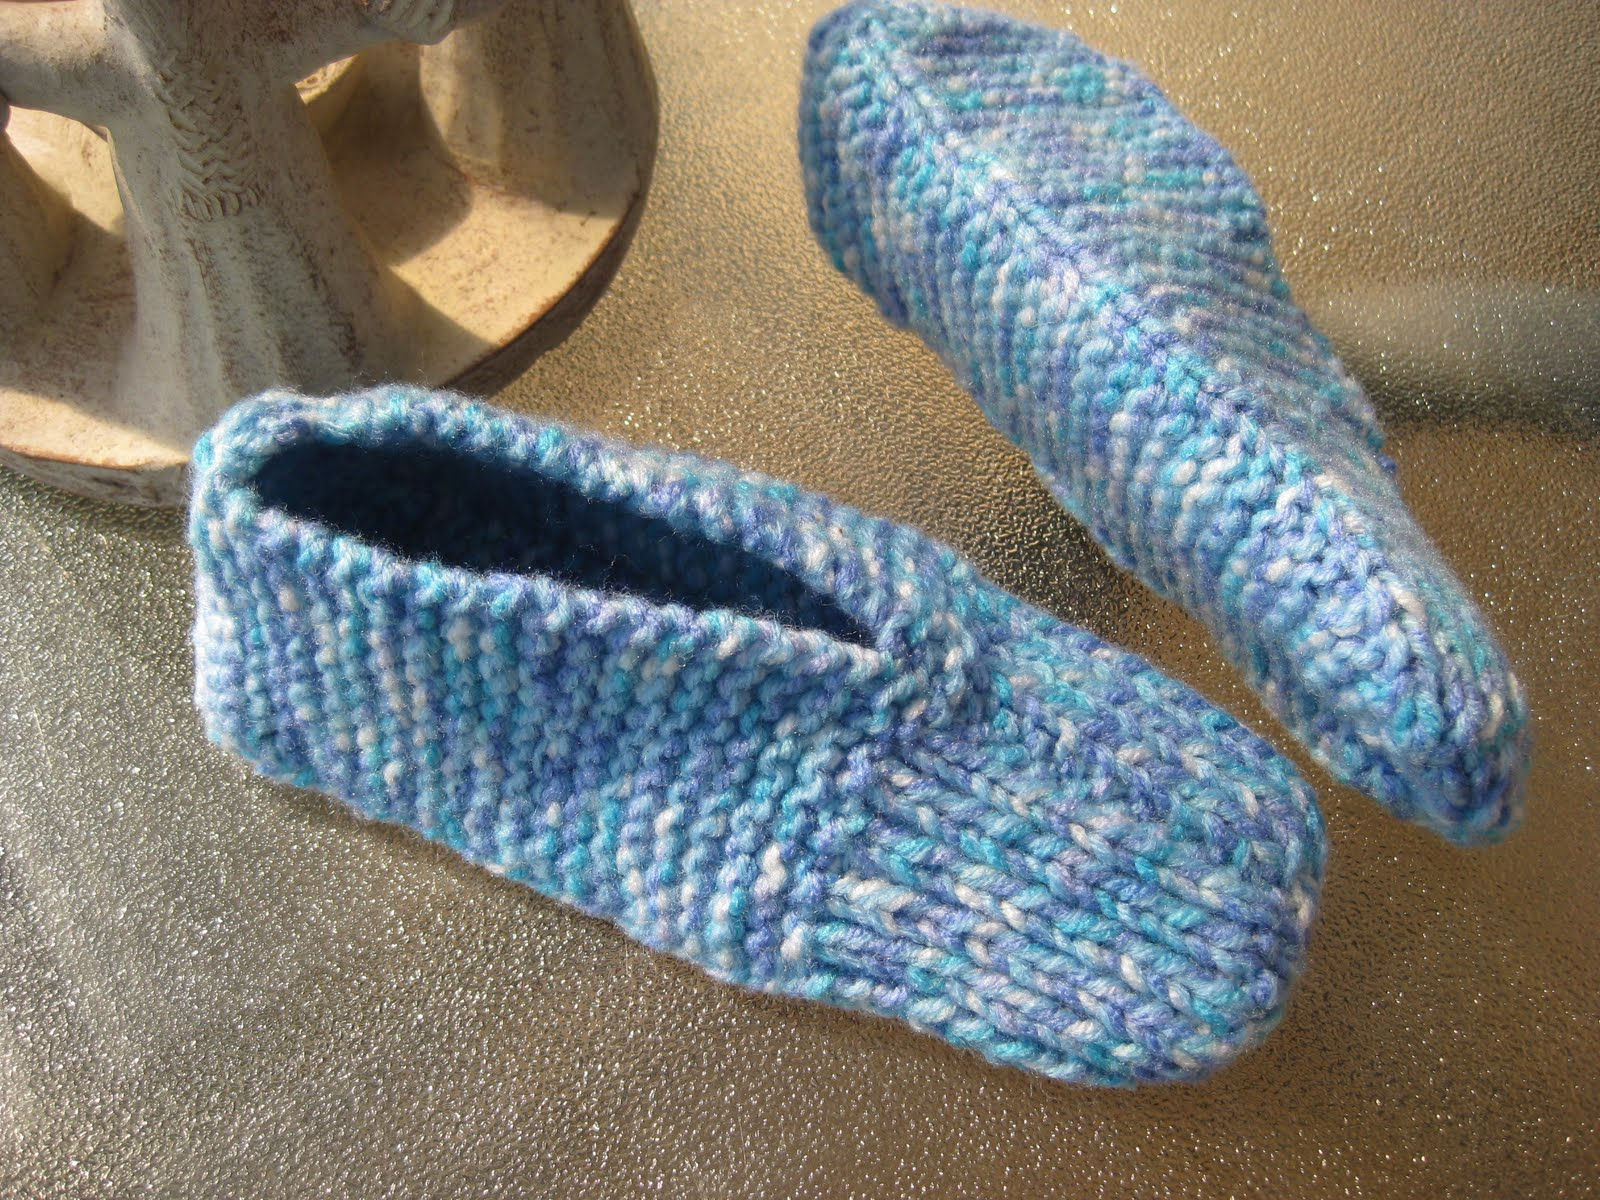 Knitting Patterns For Slippers : Knitted slippers   reposted Cathy @ Still Waters